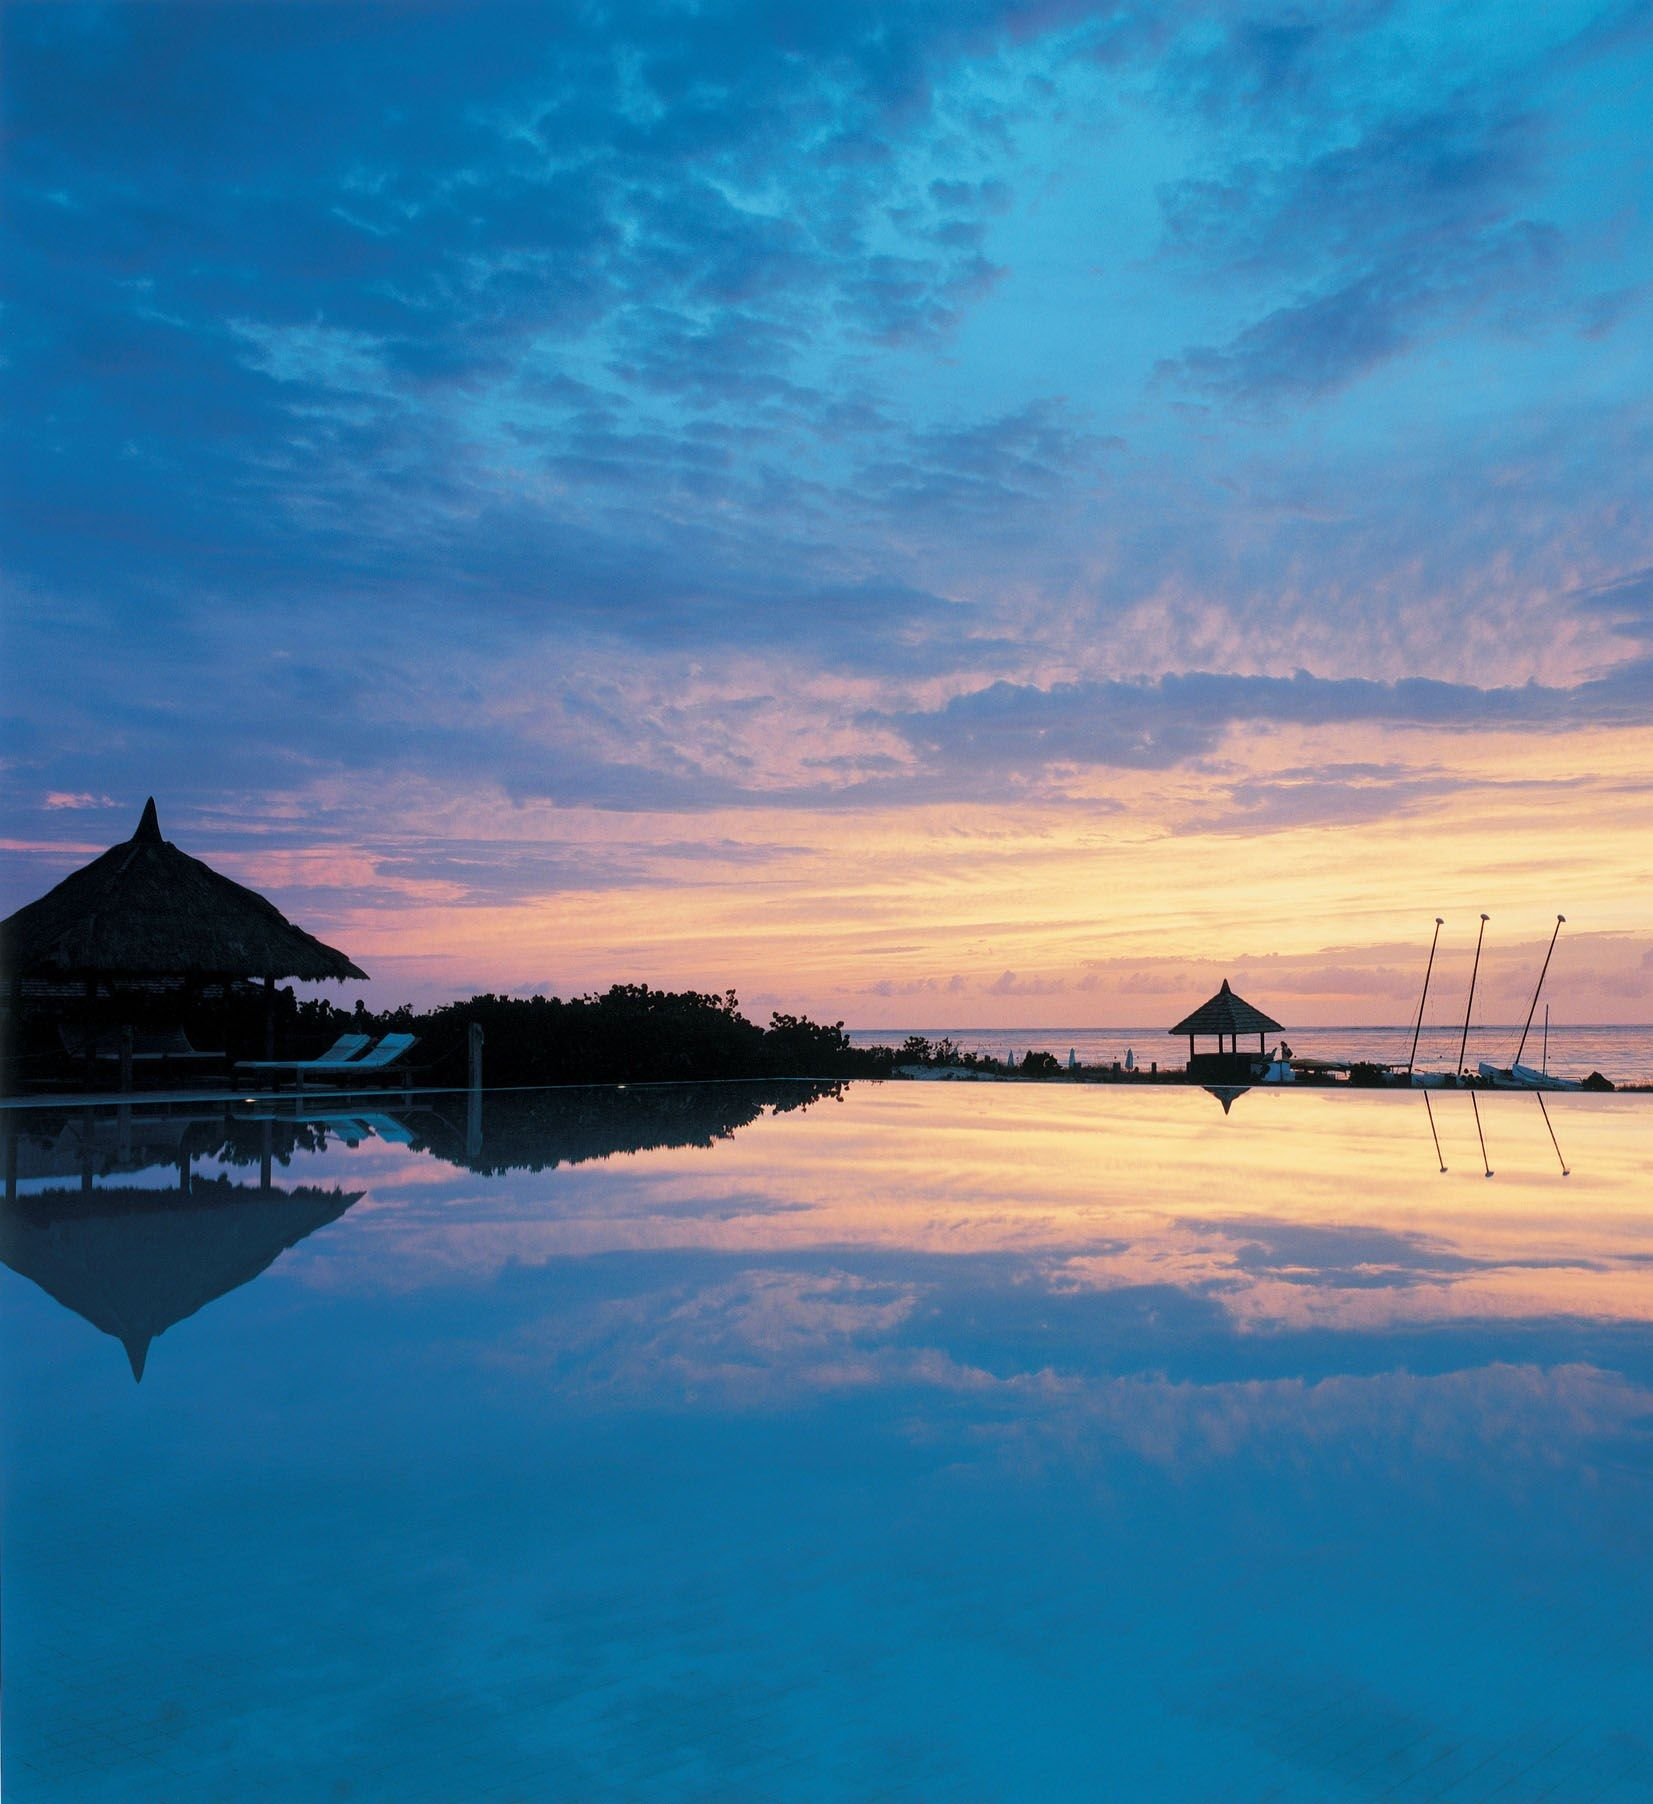 Relax and re-energise on a Parrot Cay Yoga and Pilates Retreat with awe-inspiring evening views like this